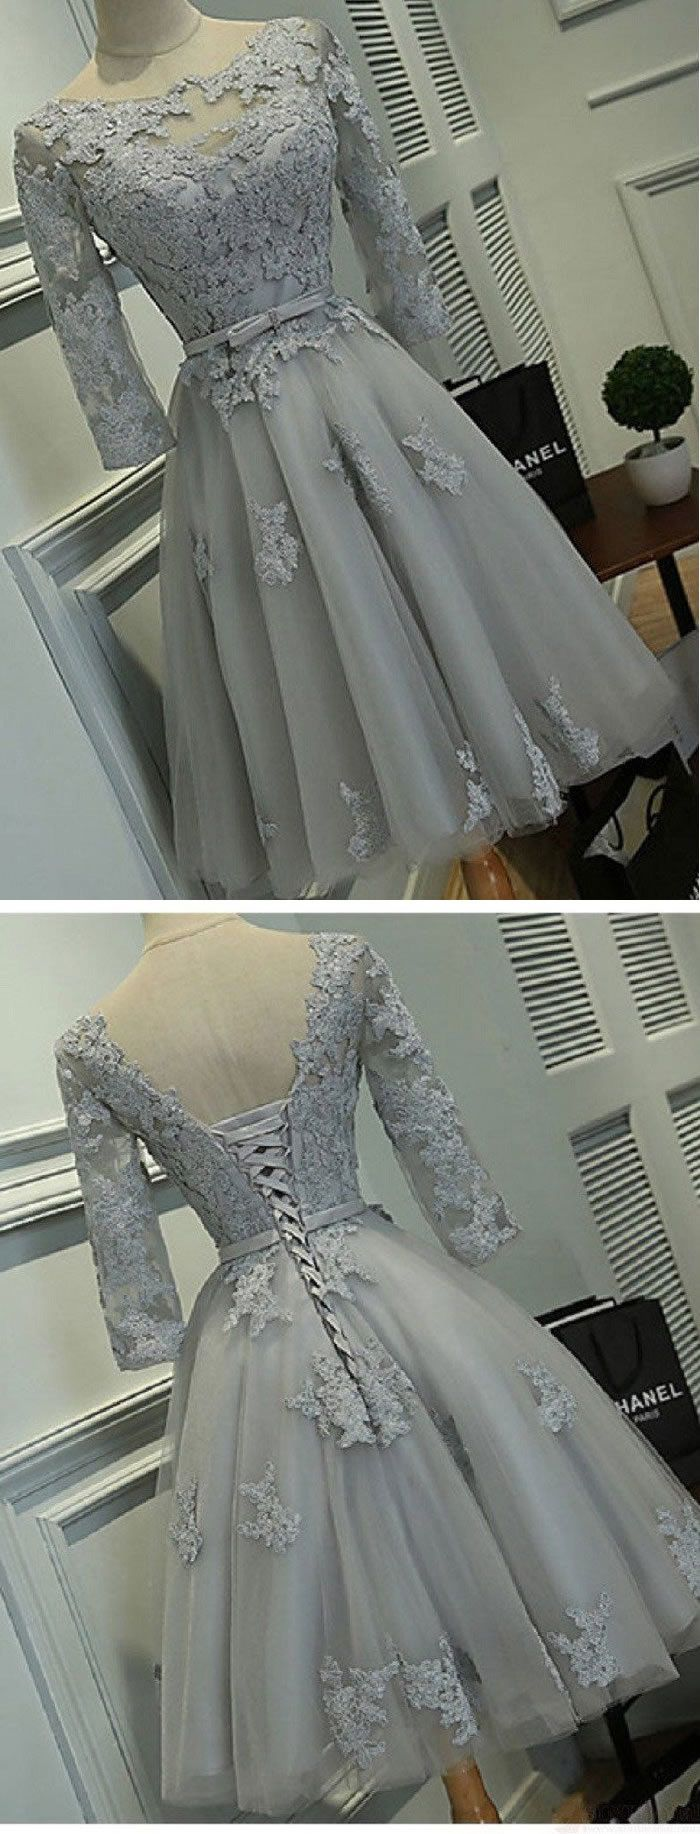 best gowns images on pinterest blouses the dress and wedding